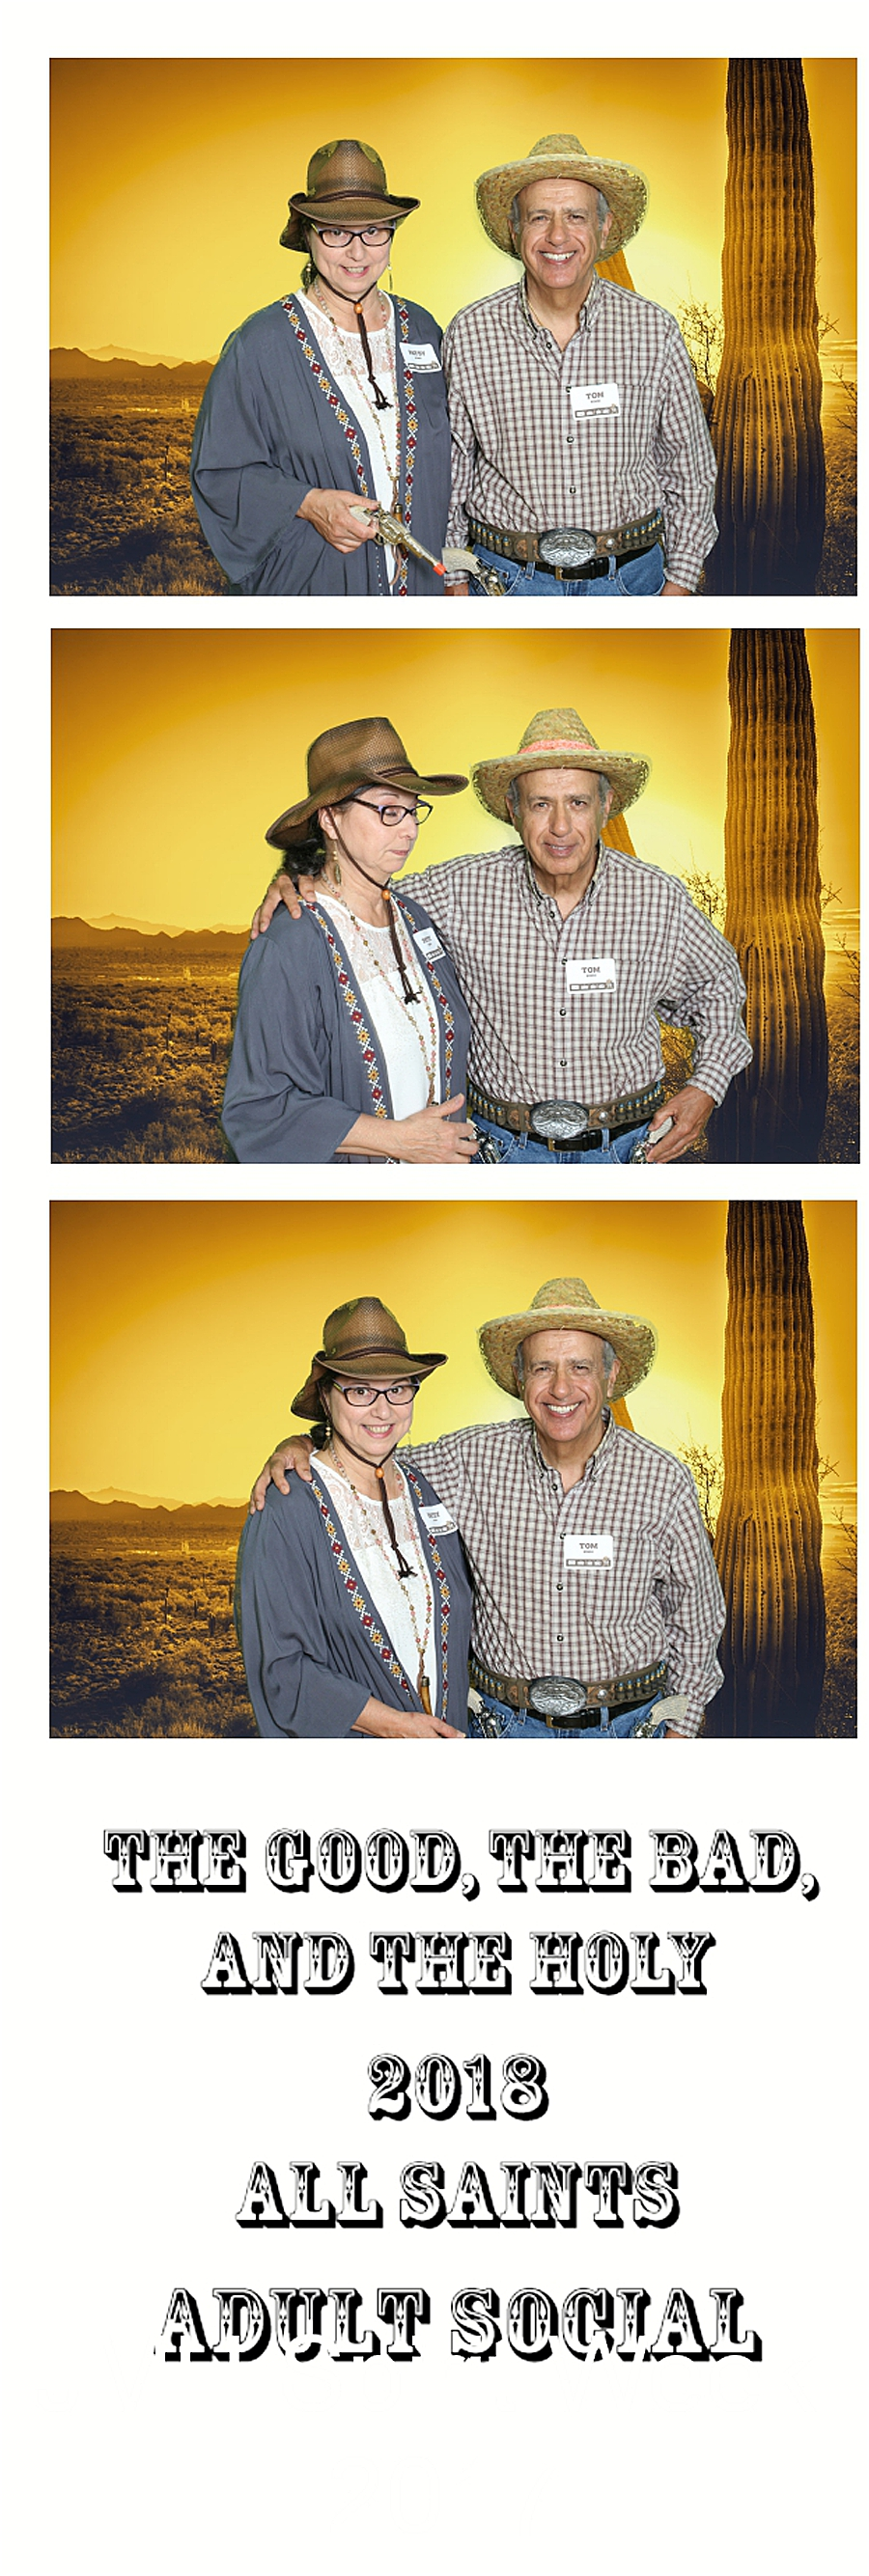 Knoxville Photo Booth_1308.jpg